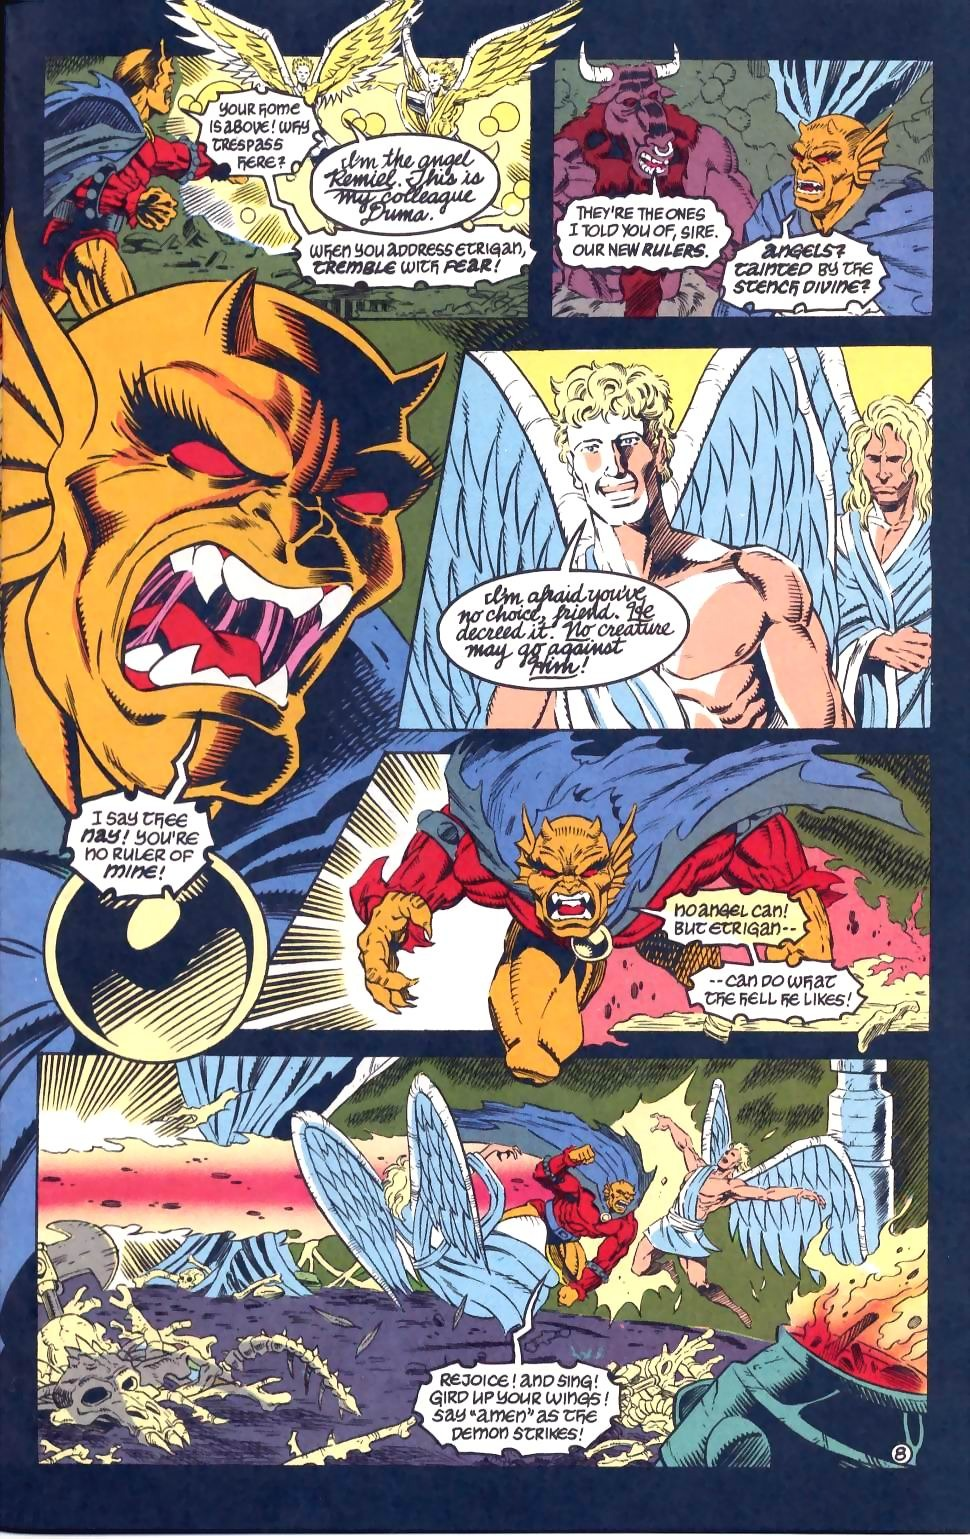 Etrigan rushes the 2 angels that the Presence sent to rule hell